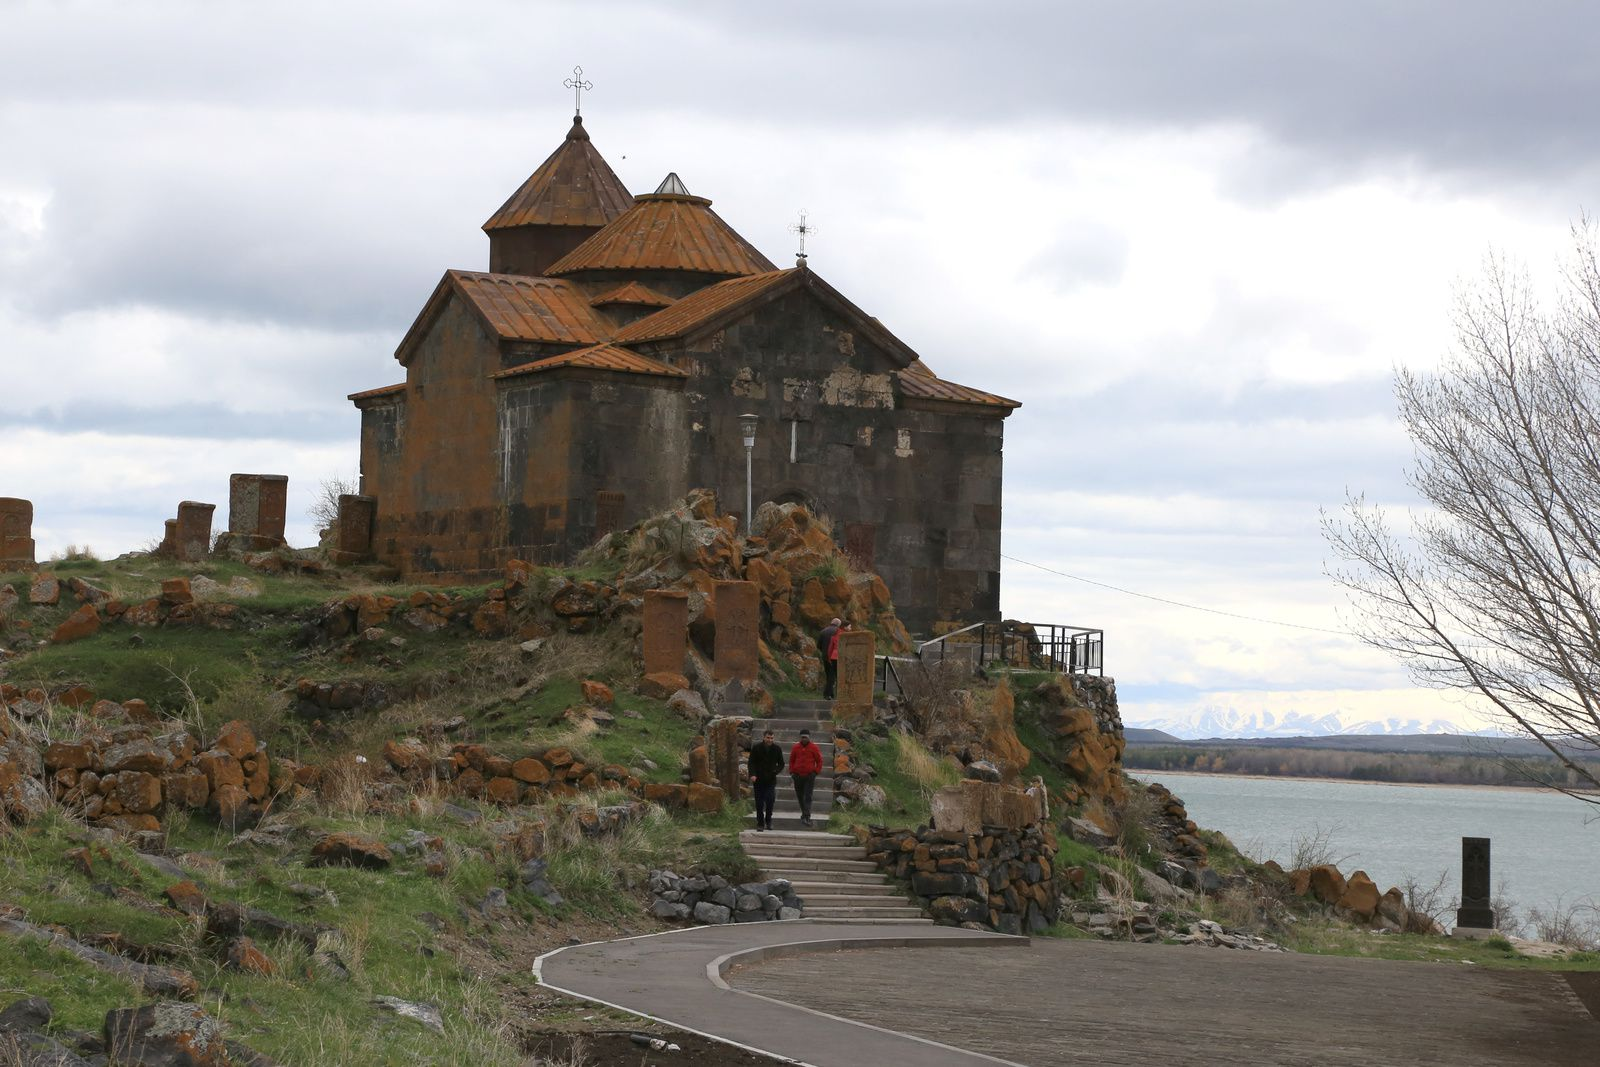 Armenia - Lake Sevan - Hayravank church (9 ° -12 ° century) dominates the lake - photo © Bernard Duyck 2019